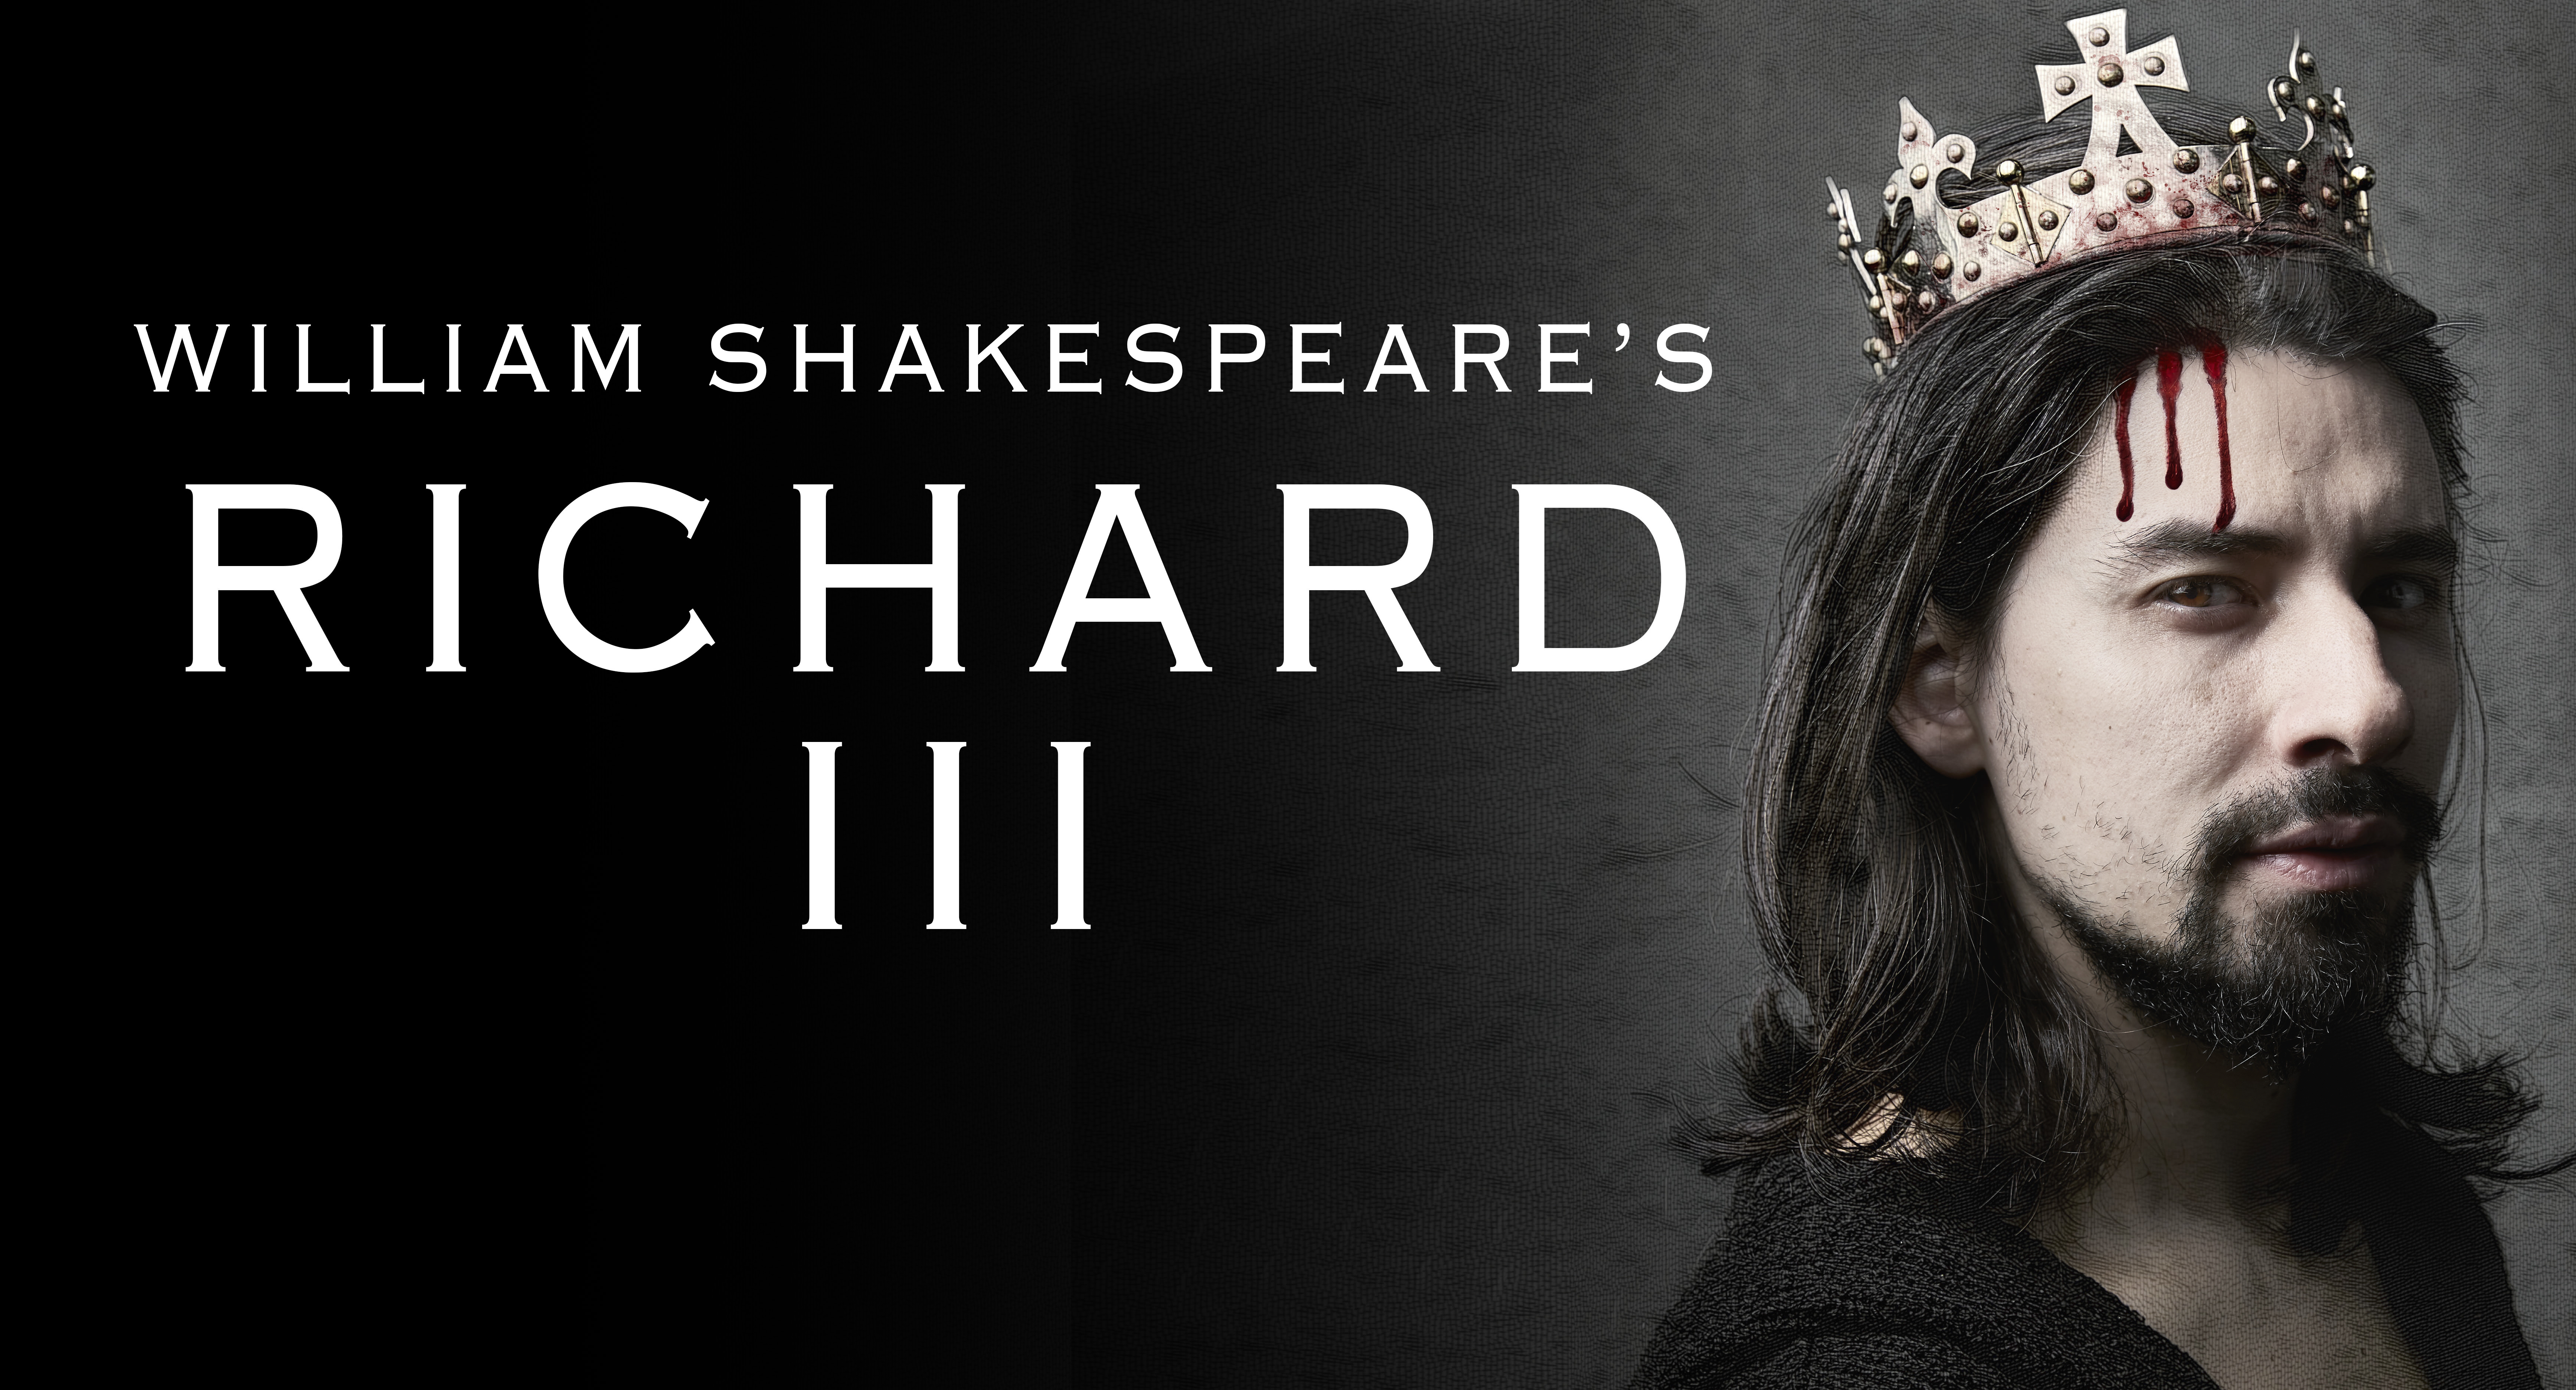 This Summer Shakespeare On The Common Will Present Richard